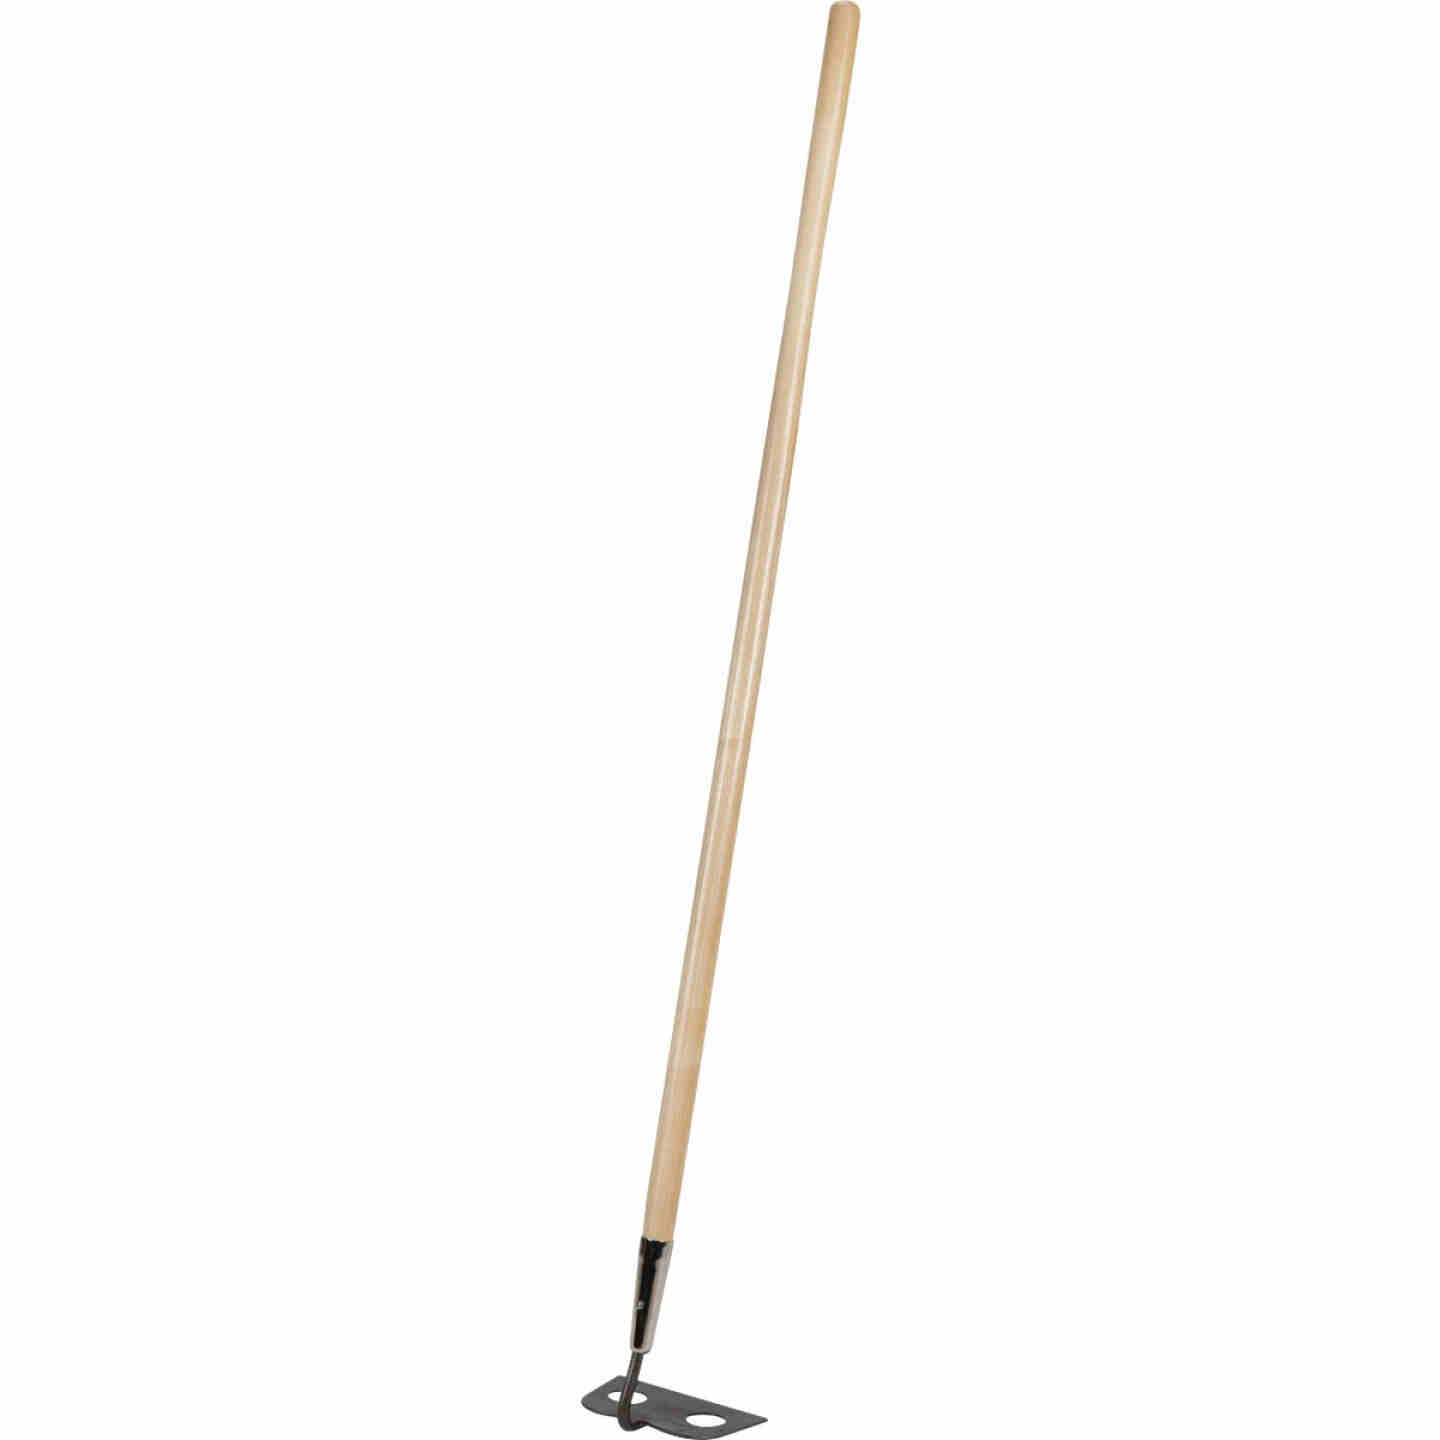 Do it Best 51 In. Wood Long Handle Forged Mortar Hoe Image 2